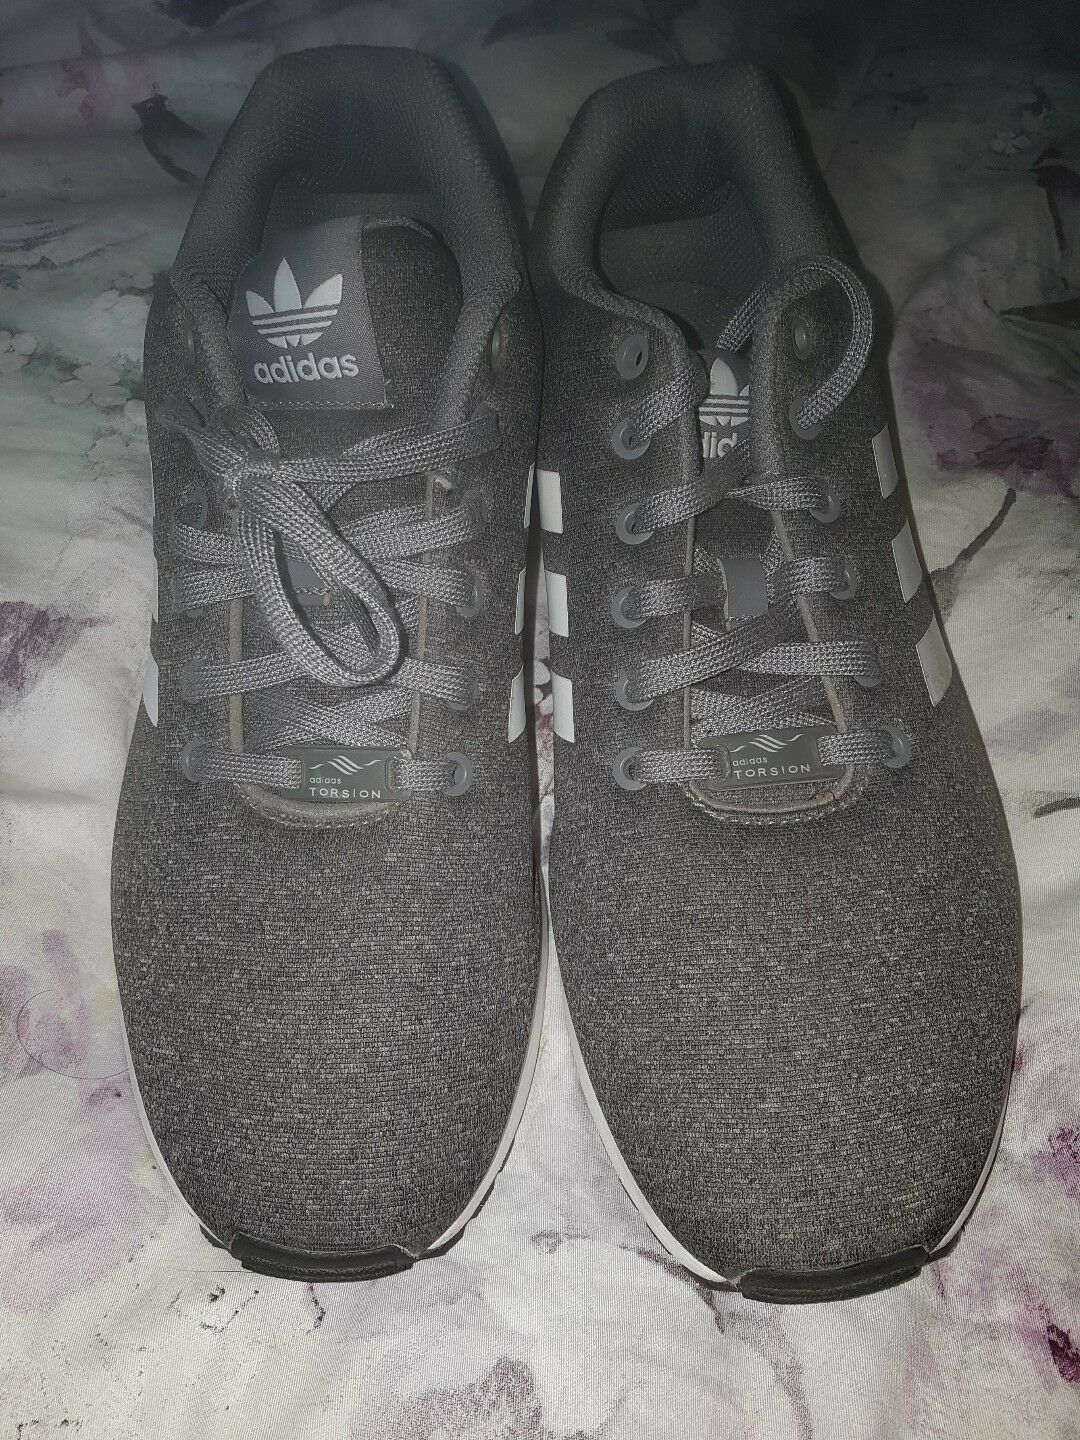 Mens adidas grey torsion trainers size 10.5 look new wore once